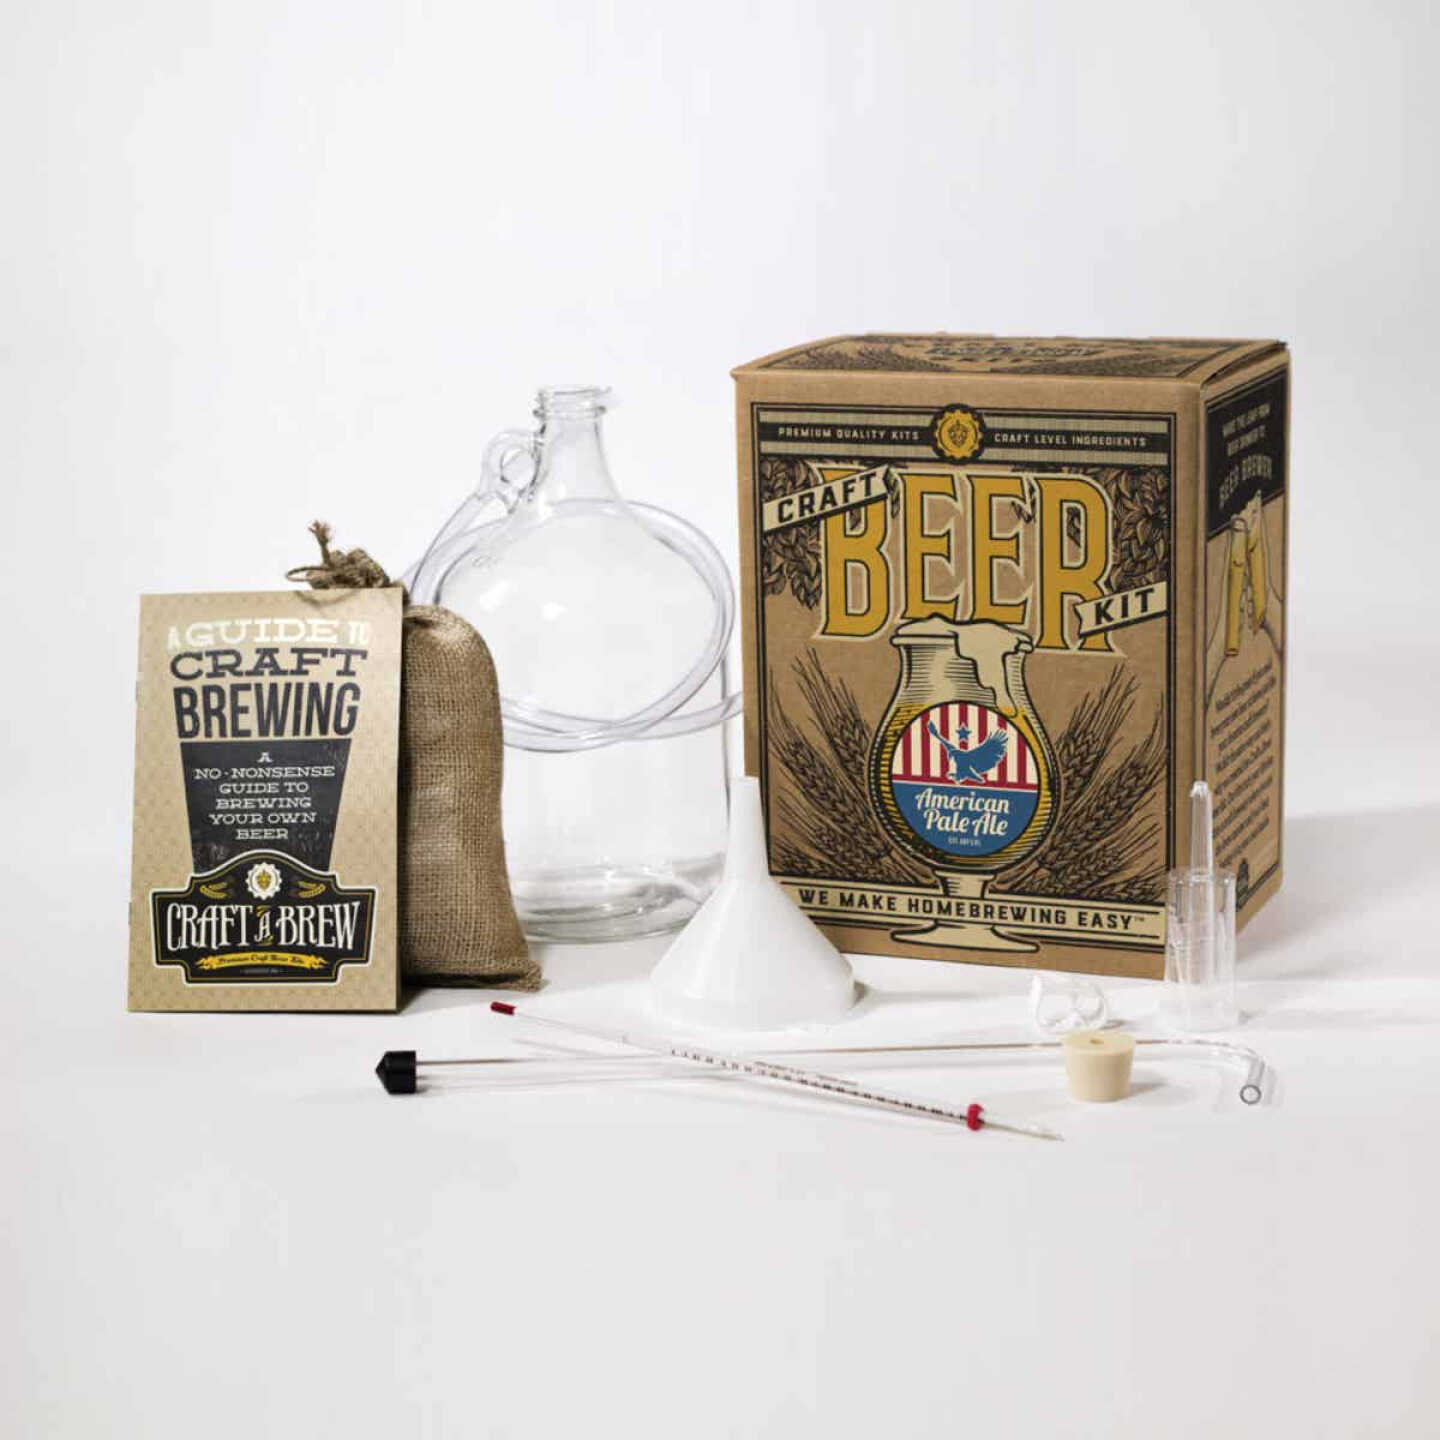 Craft A Brew American Pale Ale Beer Brewing Kit (11-Piece) Image 2